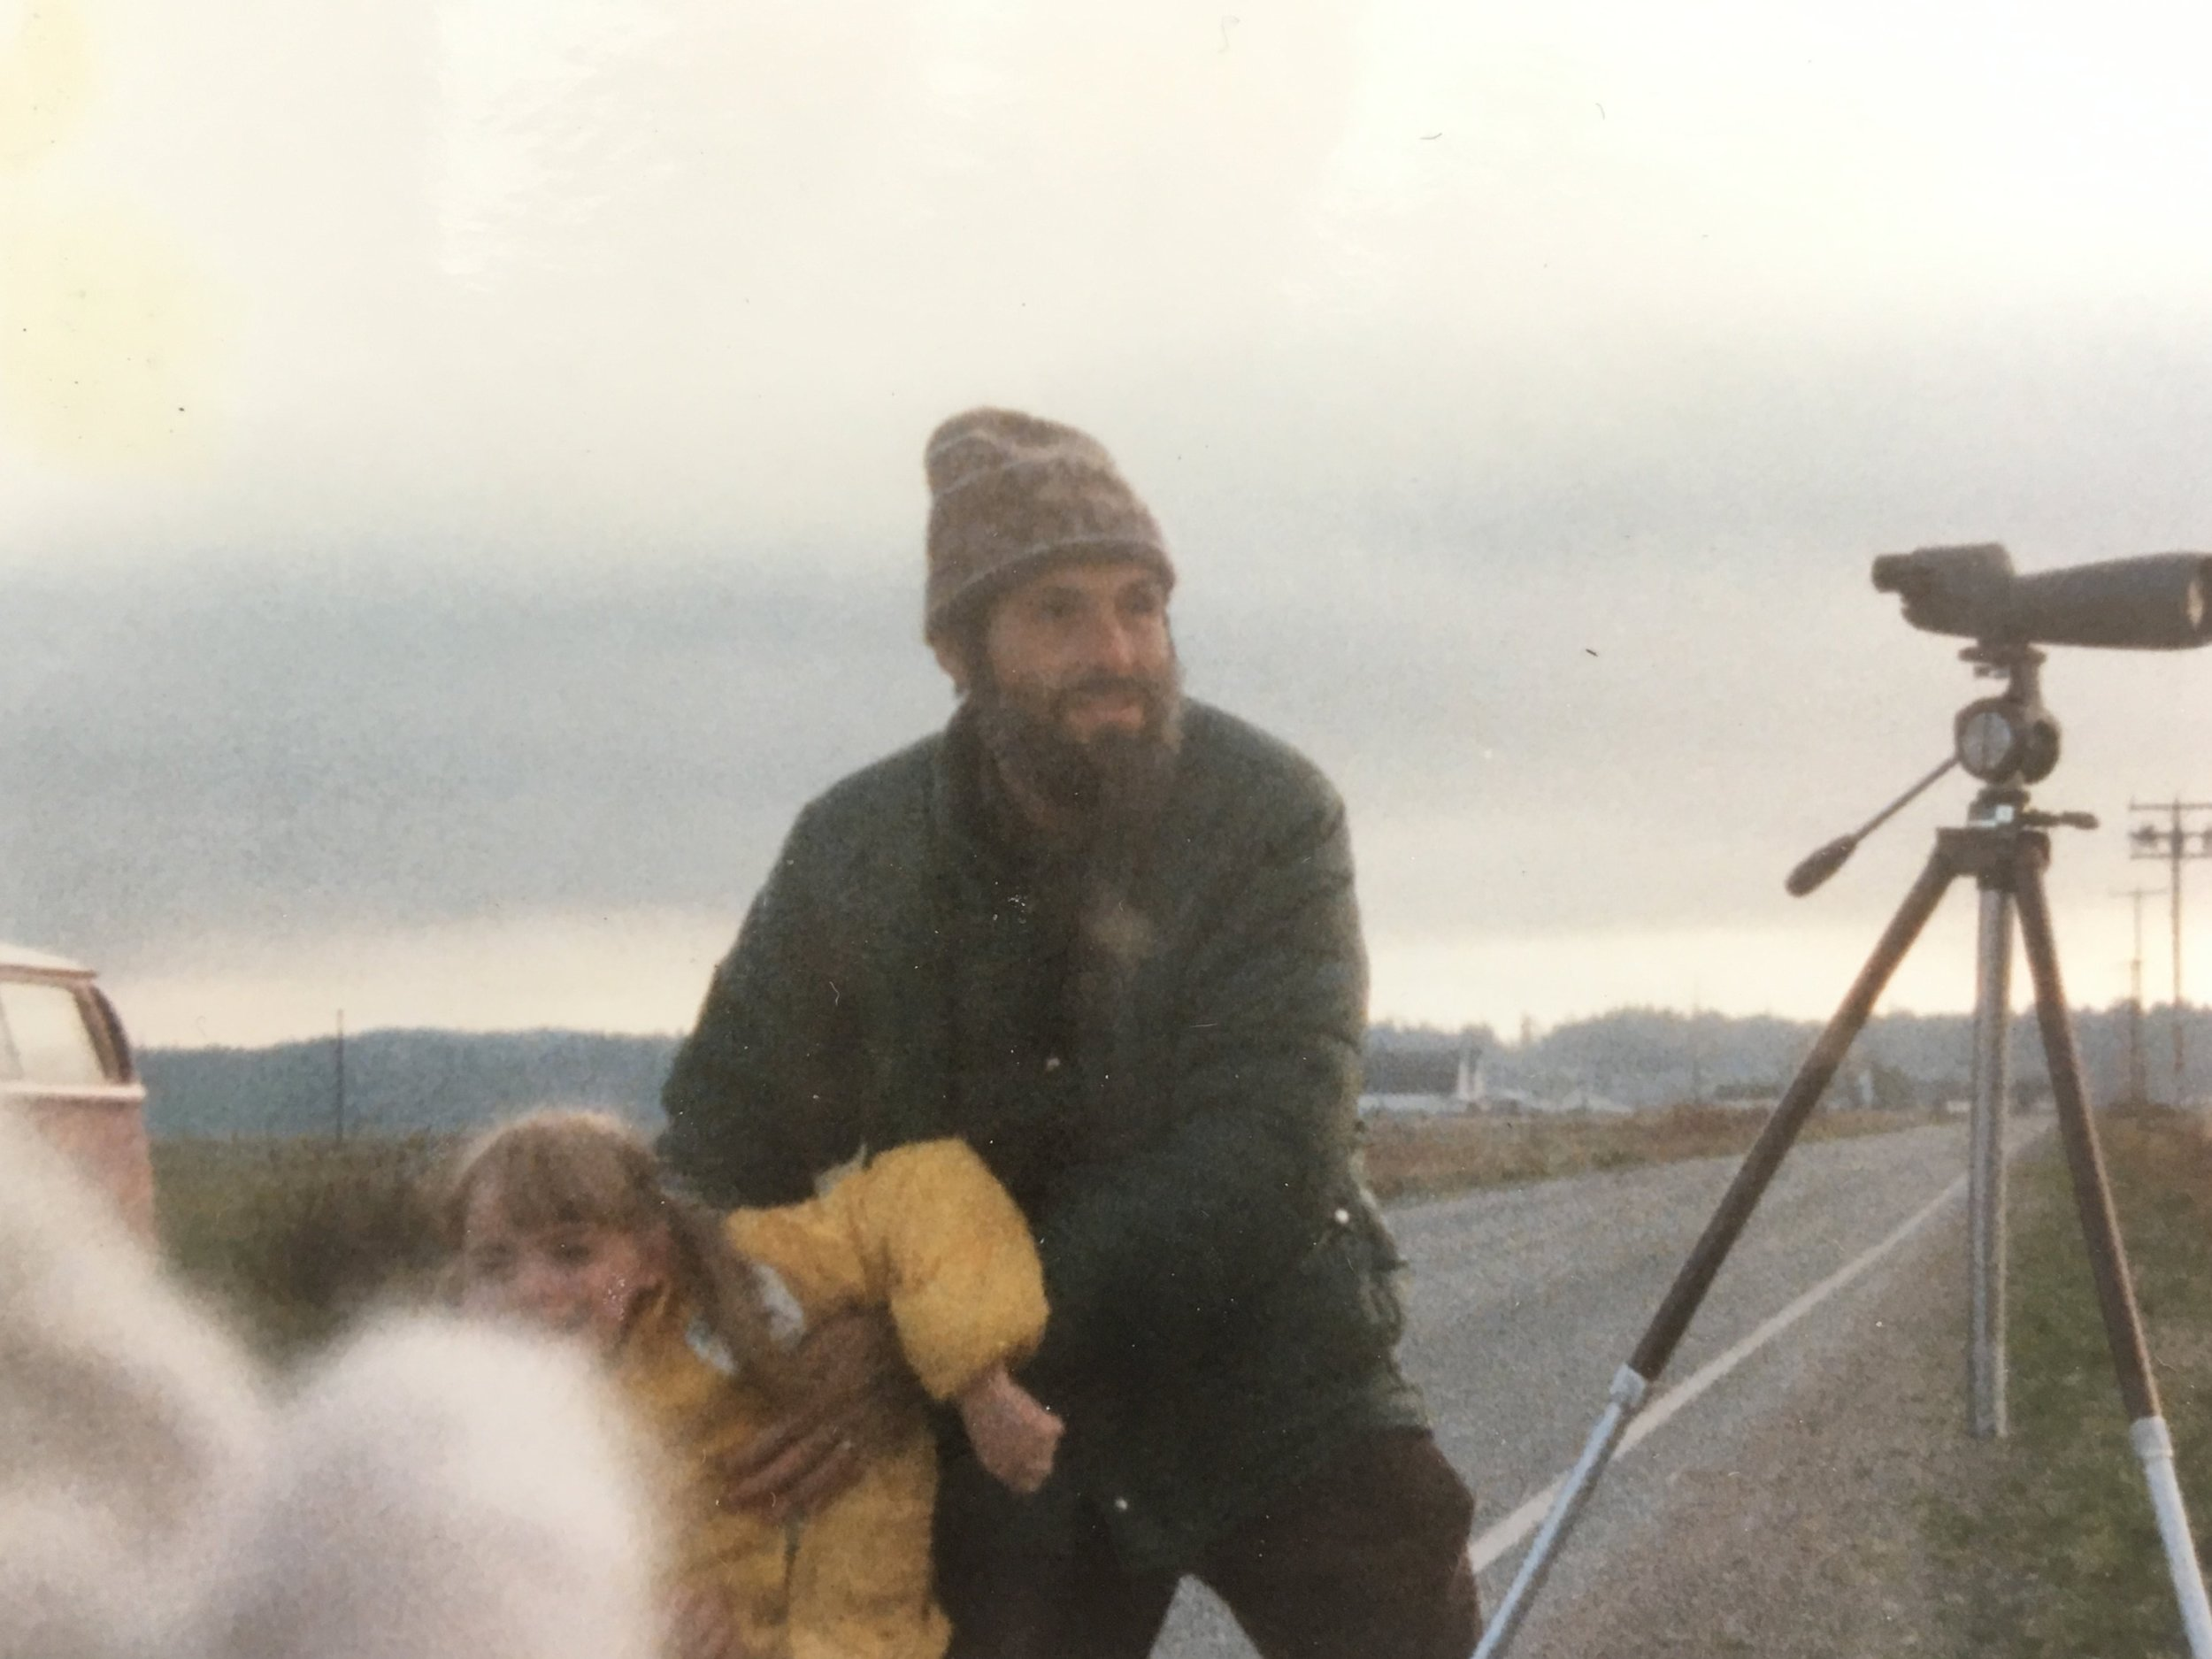 Early days of birding tailgating on the Samish Flats, Skagit Valley, WA, 1980. That's Gordon Orians, AKA Gornut goofing around with me (I can tell it's me by that pronounced cowlick).